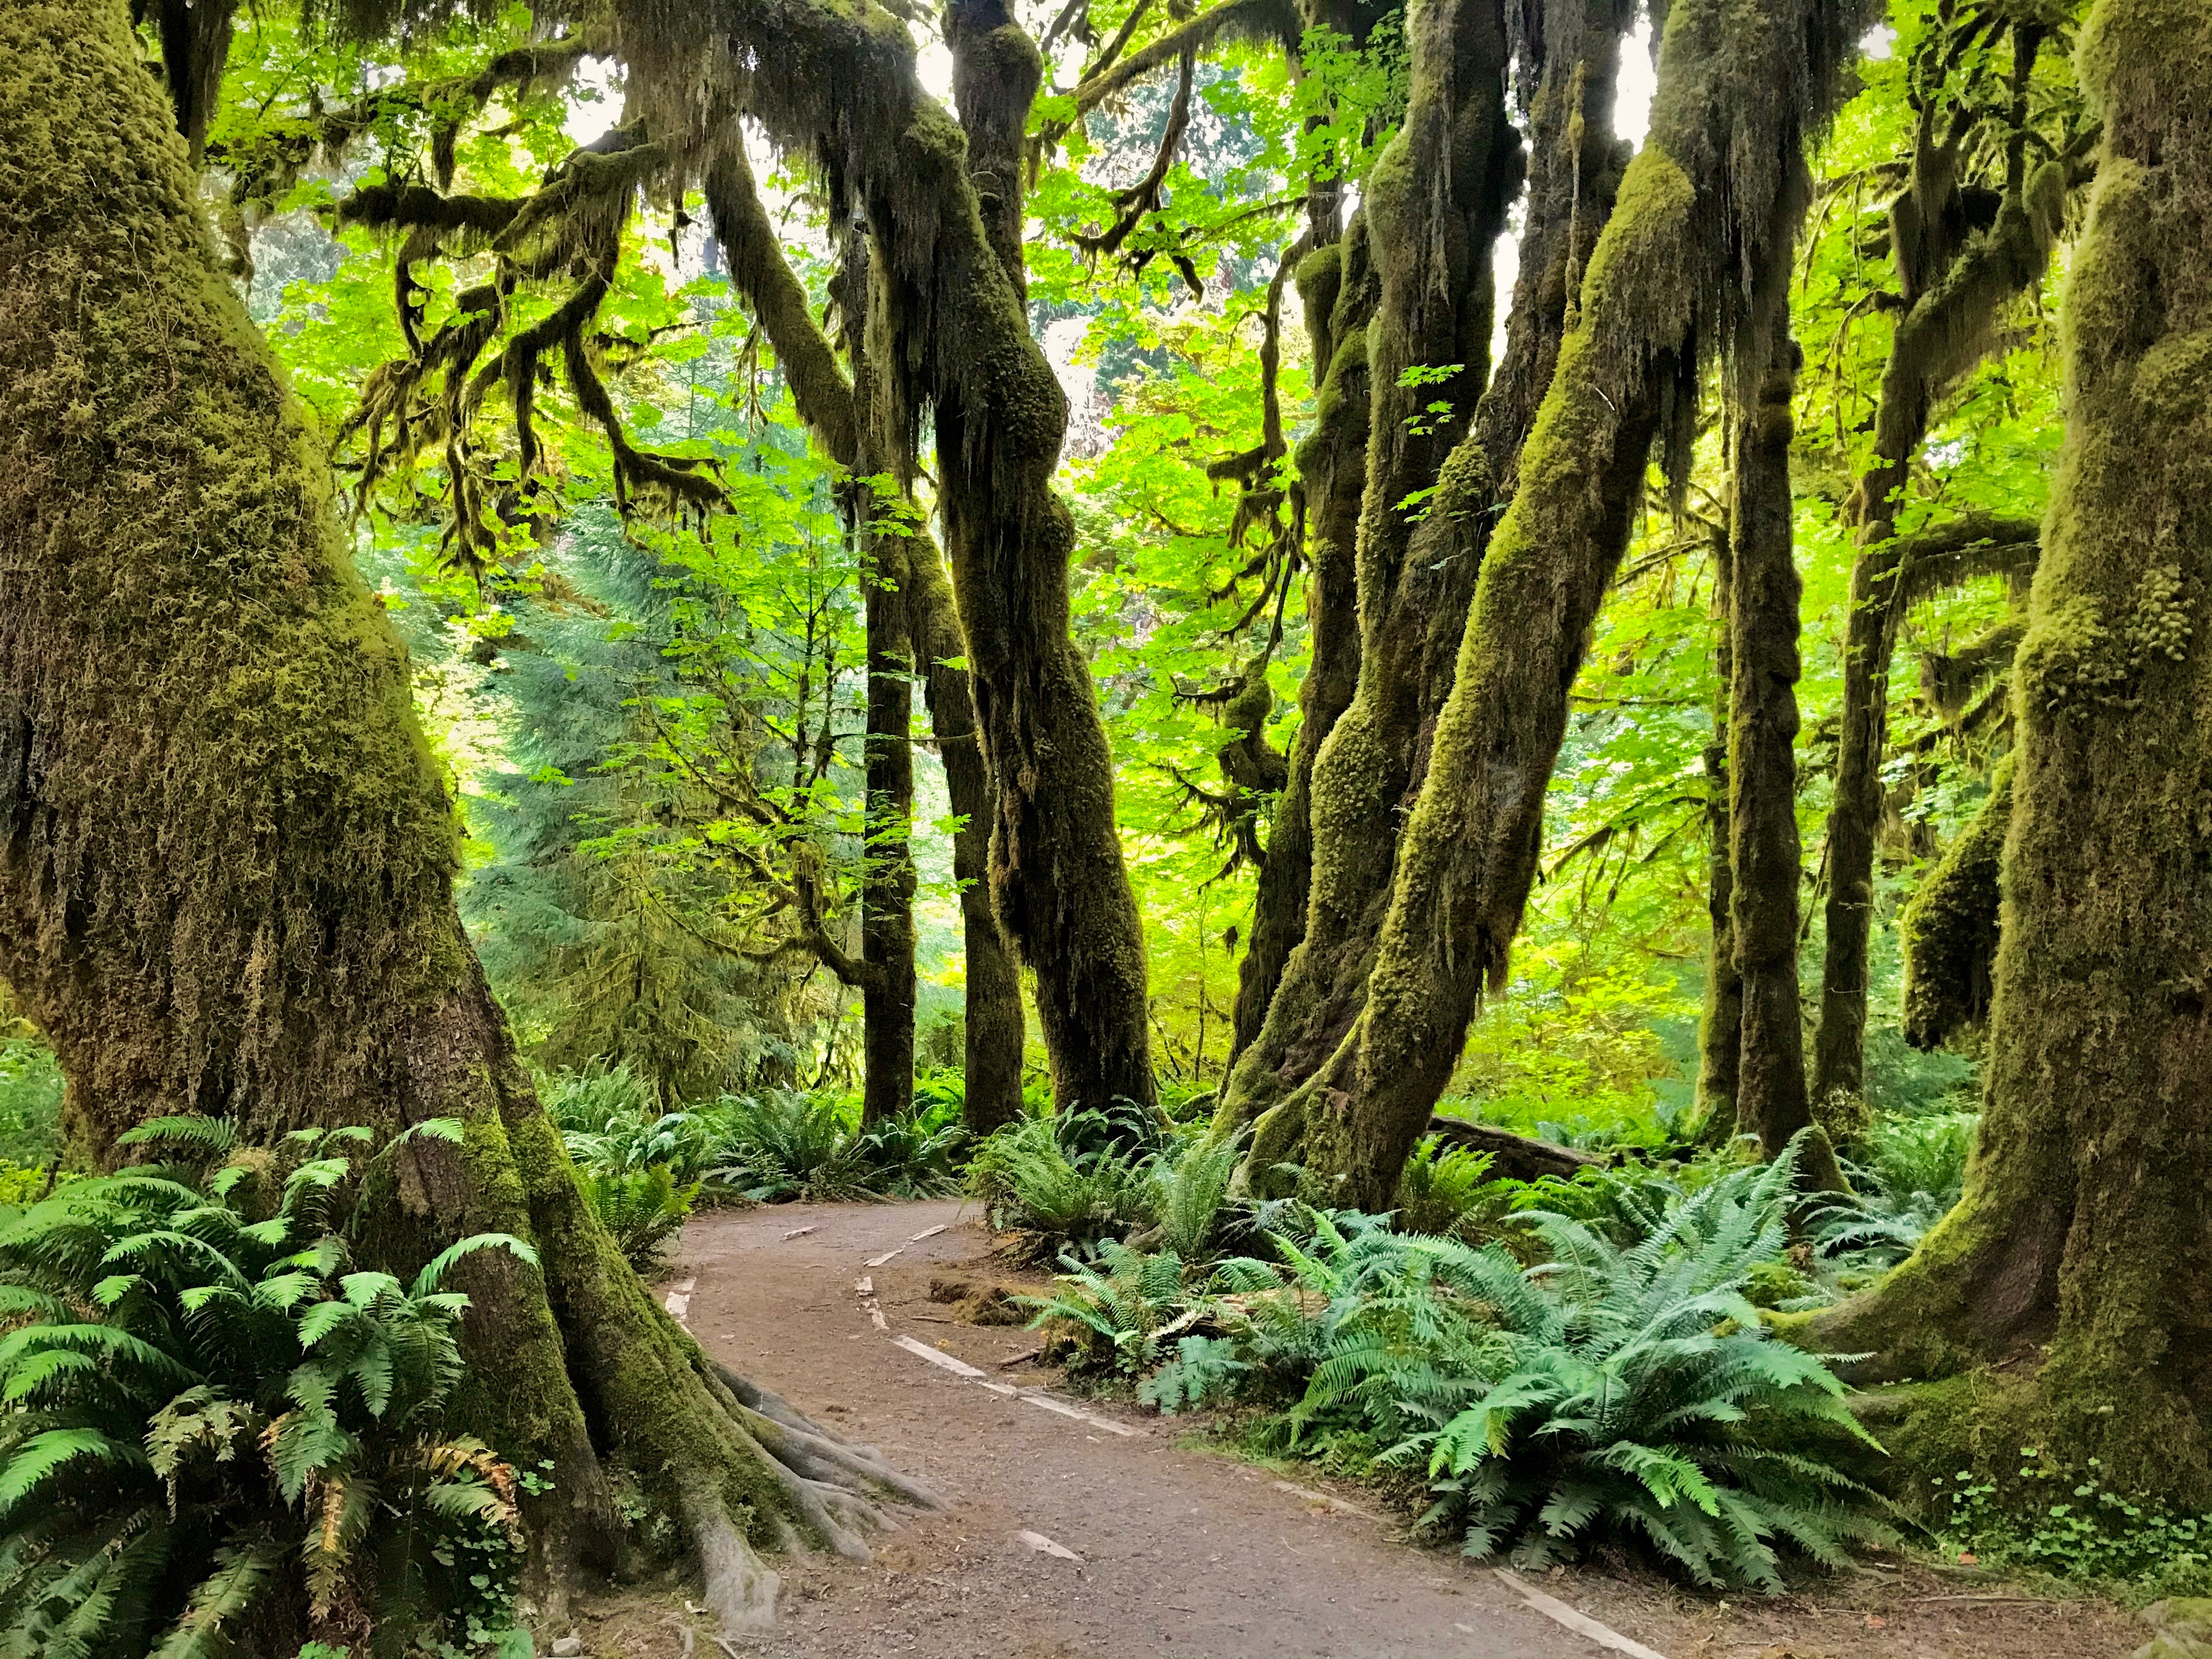 A trail leading through a mossy forest.